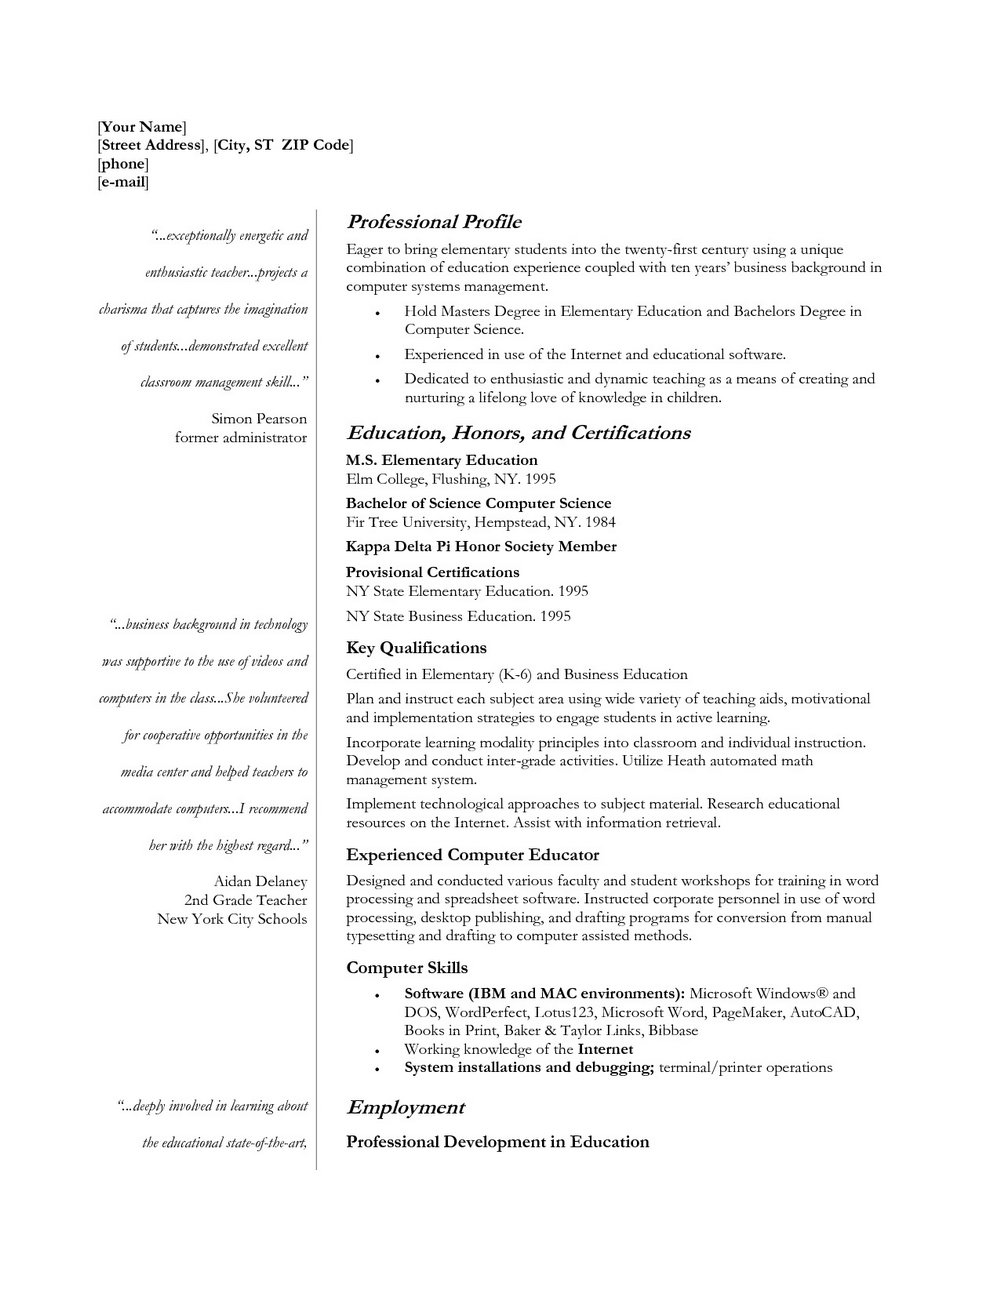 Resume Templates For Teachers – Resume Templates 2017 In